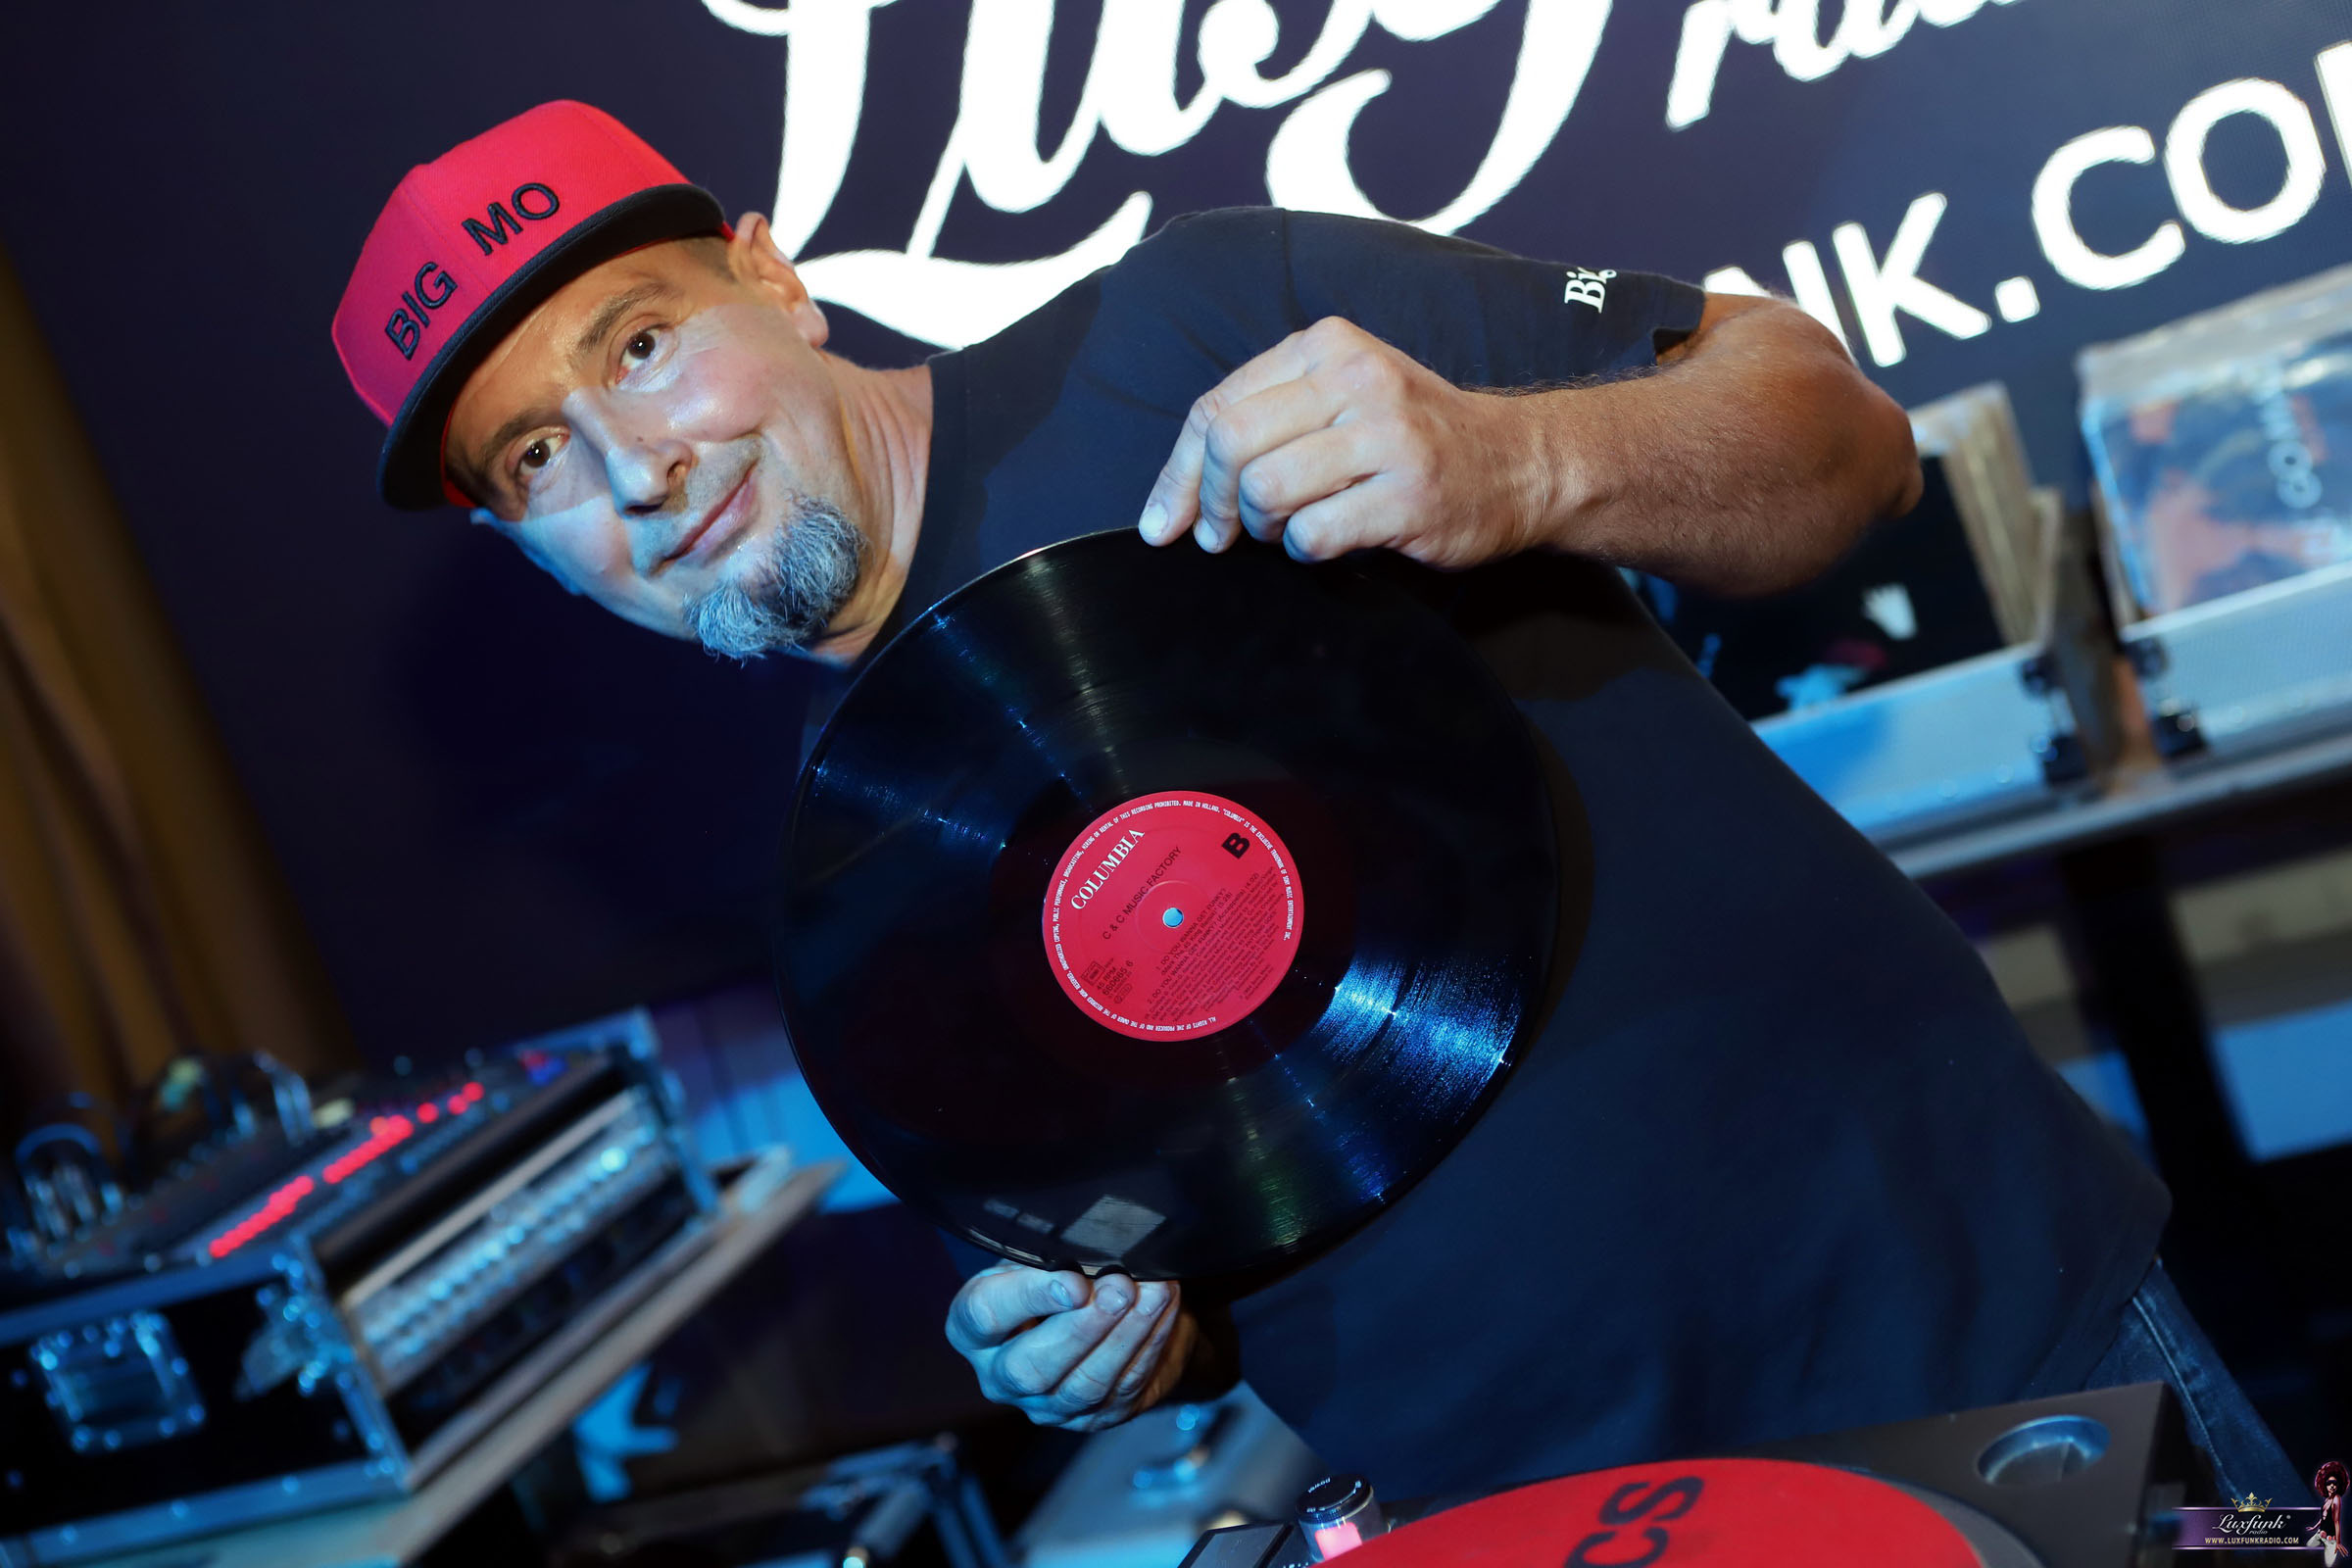 luxfunk-radio-funky-party-200912-symbol-budapest_13